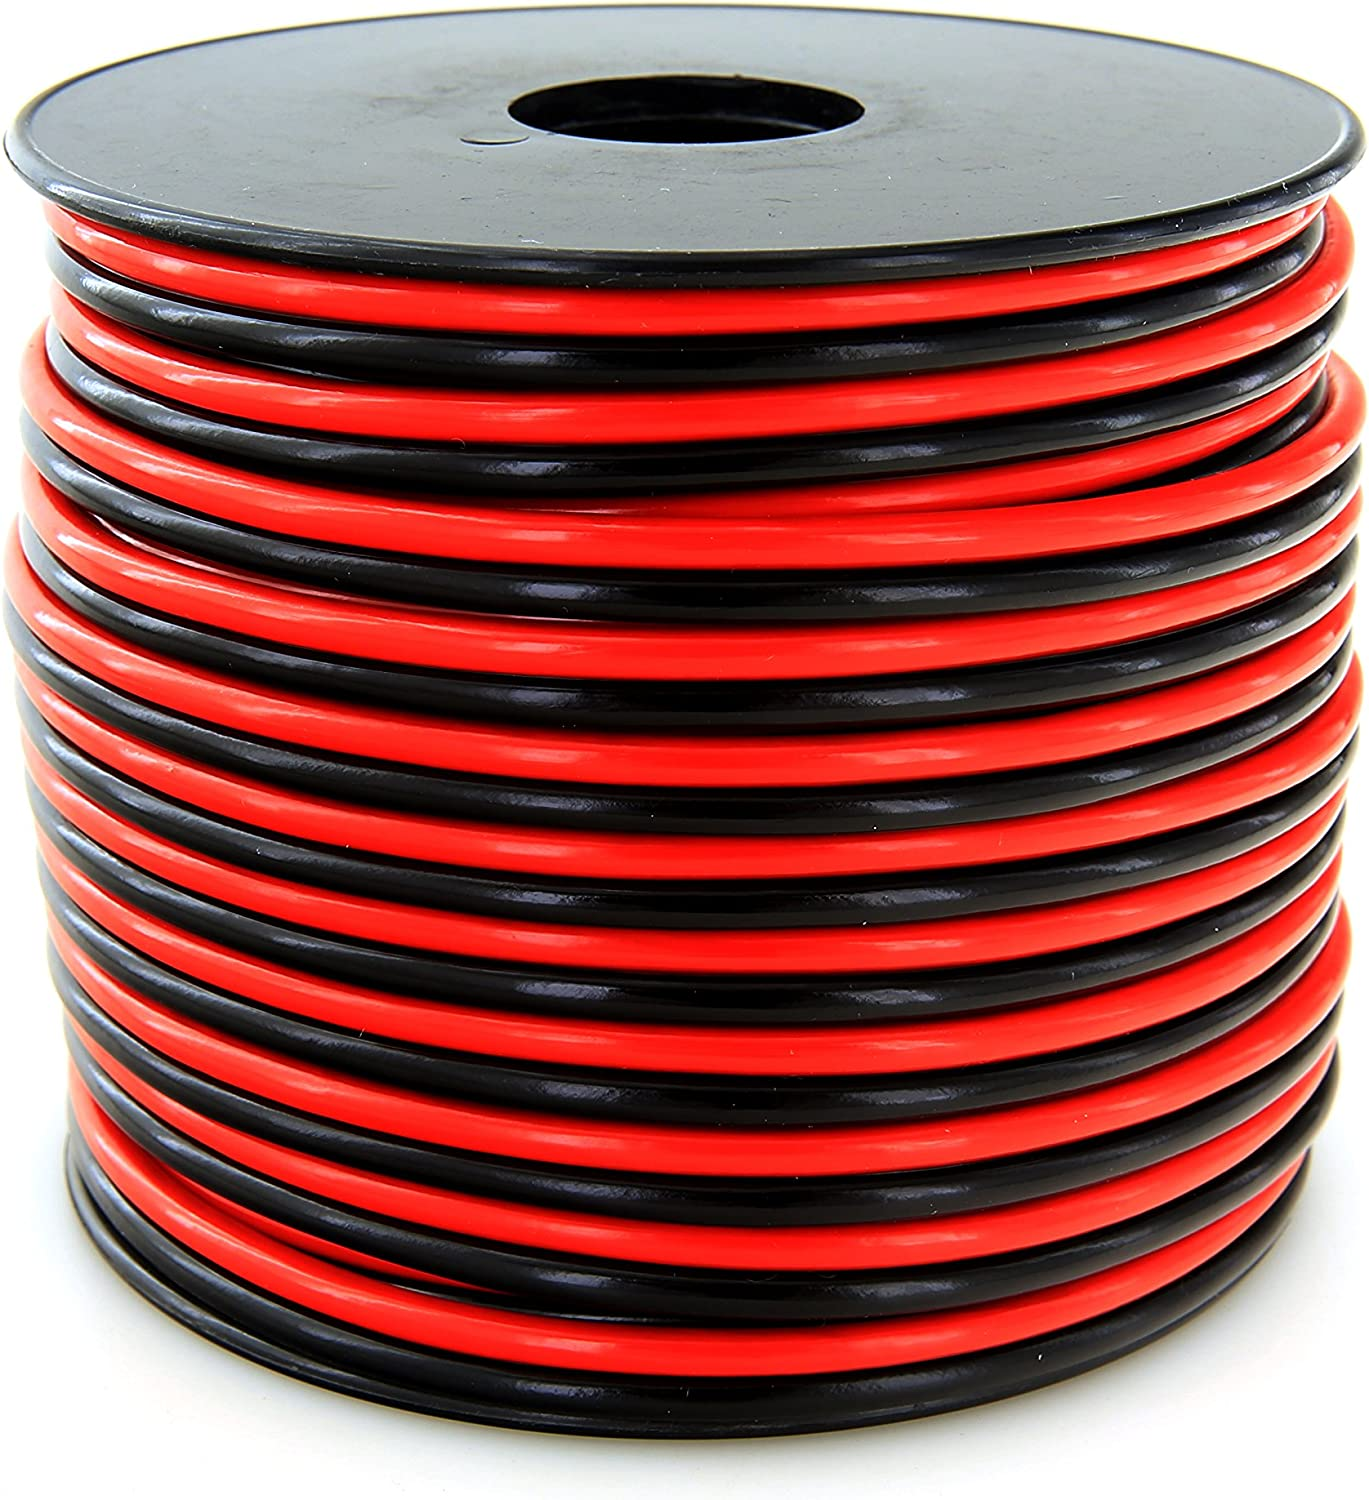 GS Power 100% Copper 12 AWG (American Wire Gauge) 100 Feet Flexible Stranded Red/Black 2 Conductor Bonded Zip Cord for Car Audio Amplifier 12V Automotive Dash Harness LED Light Wiring: Automotive